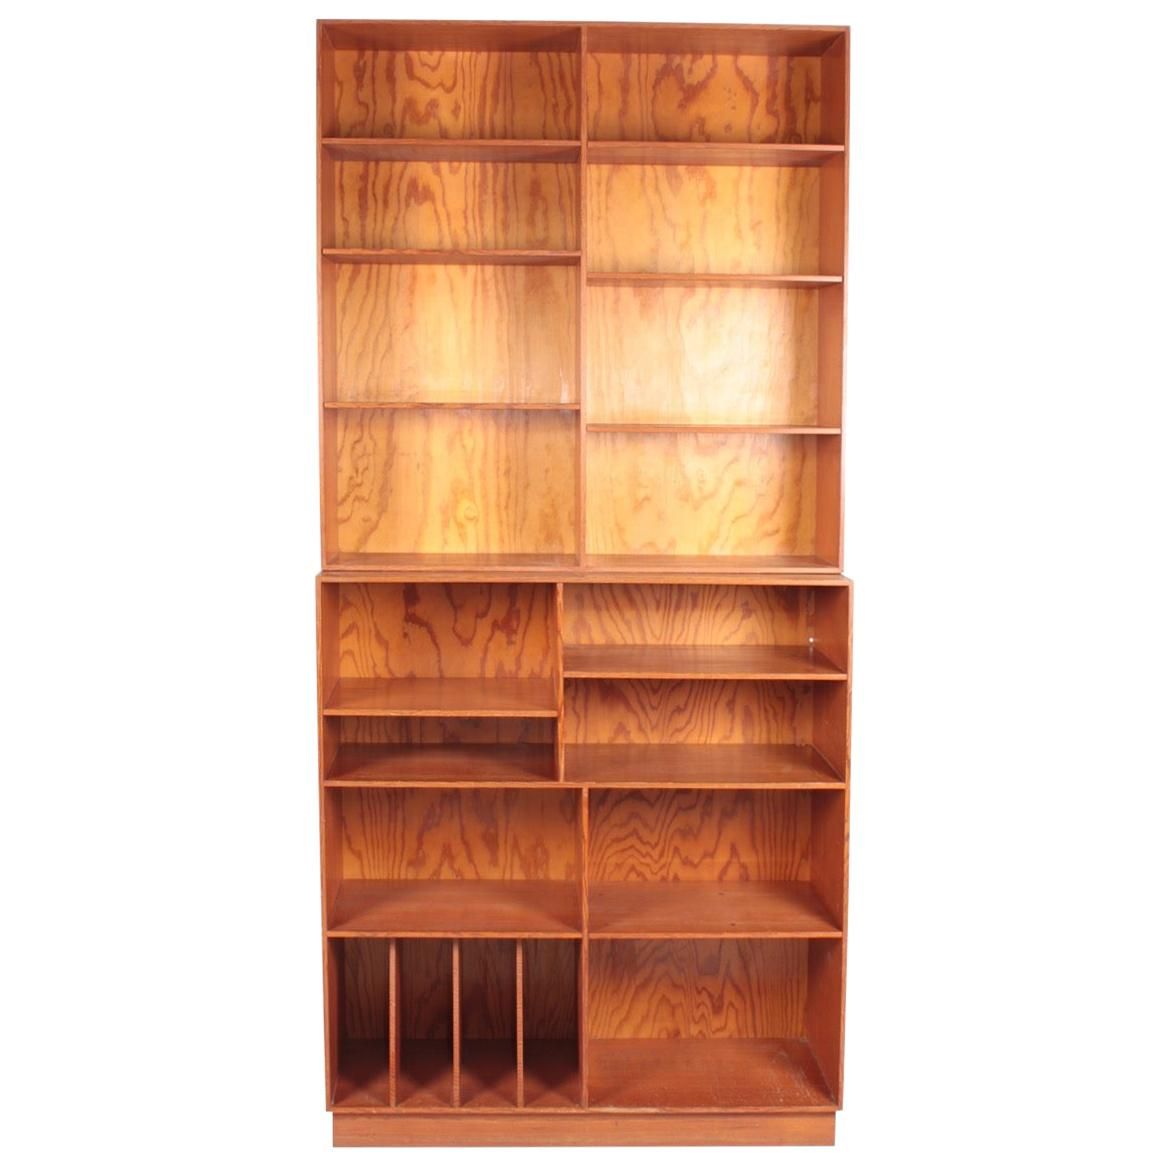 Midcentury Bookcase in Patinated Origon Pine, Made in Denmark, 1950s